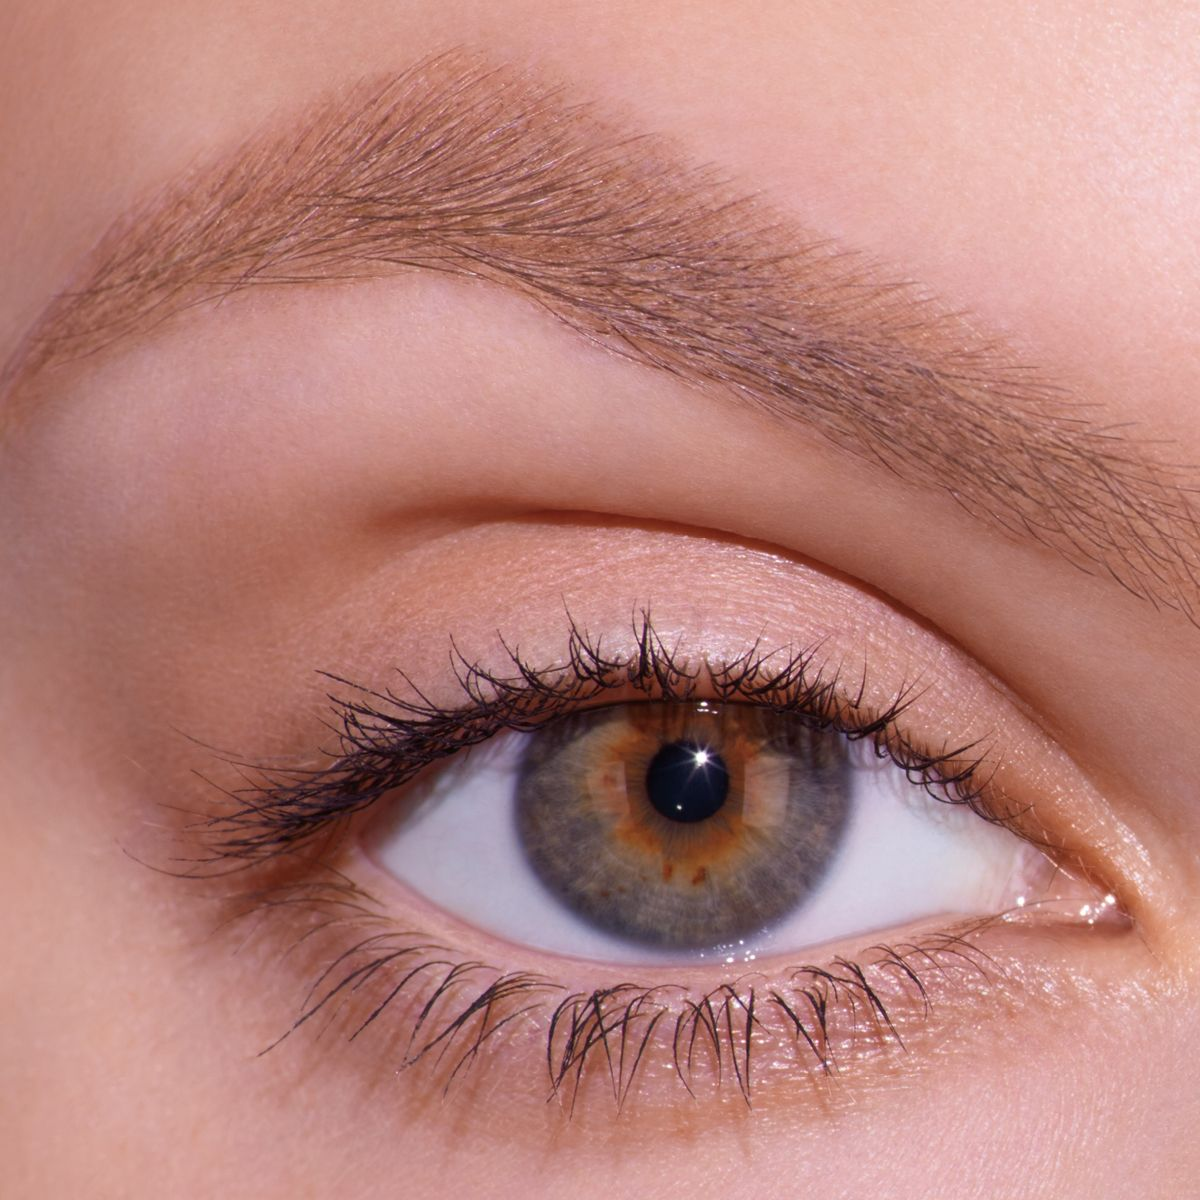 Mac Cosmetics Homepage Brows Are It Brows Natural Brows